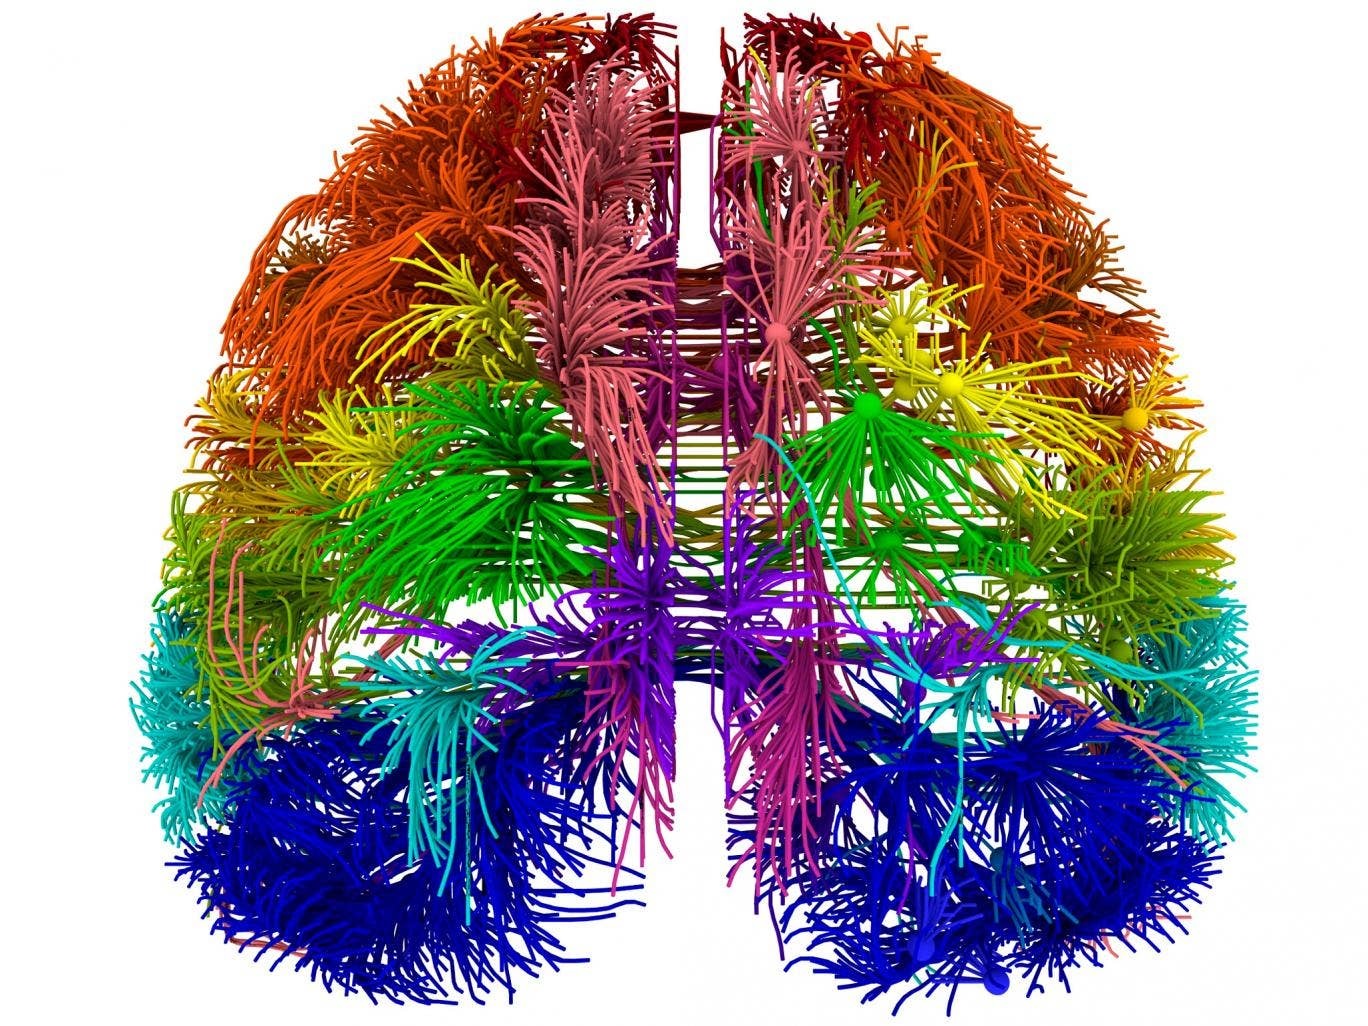 A top-down view of the connections between several distinct cortical areas, visualized using Allen Institute software